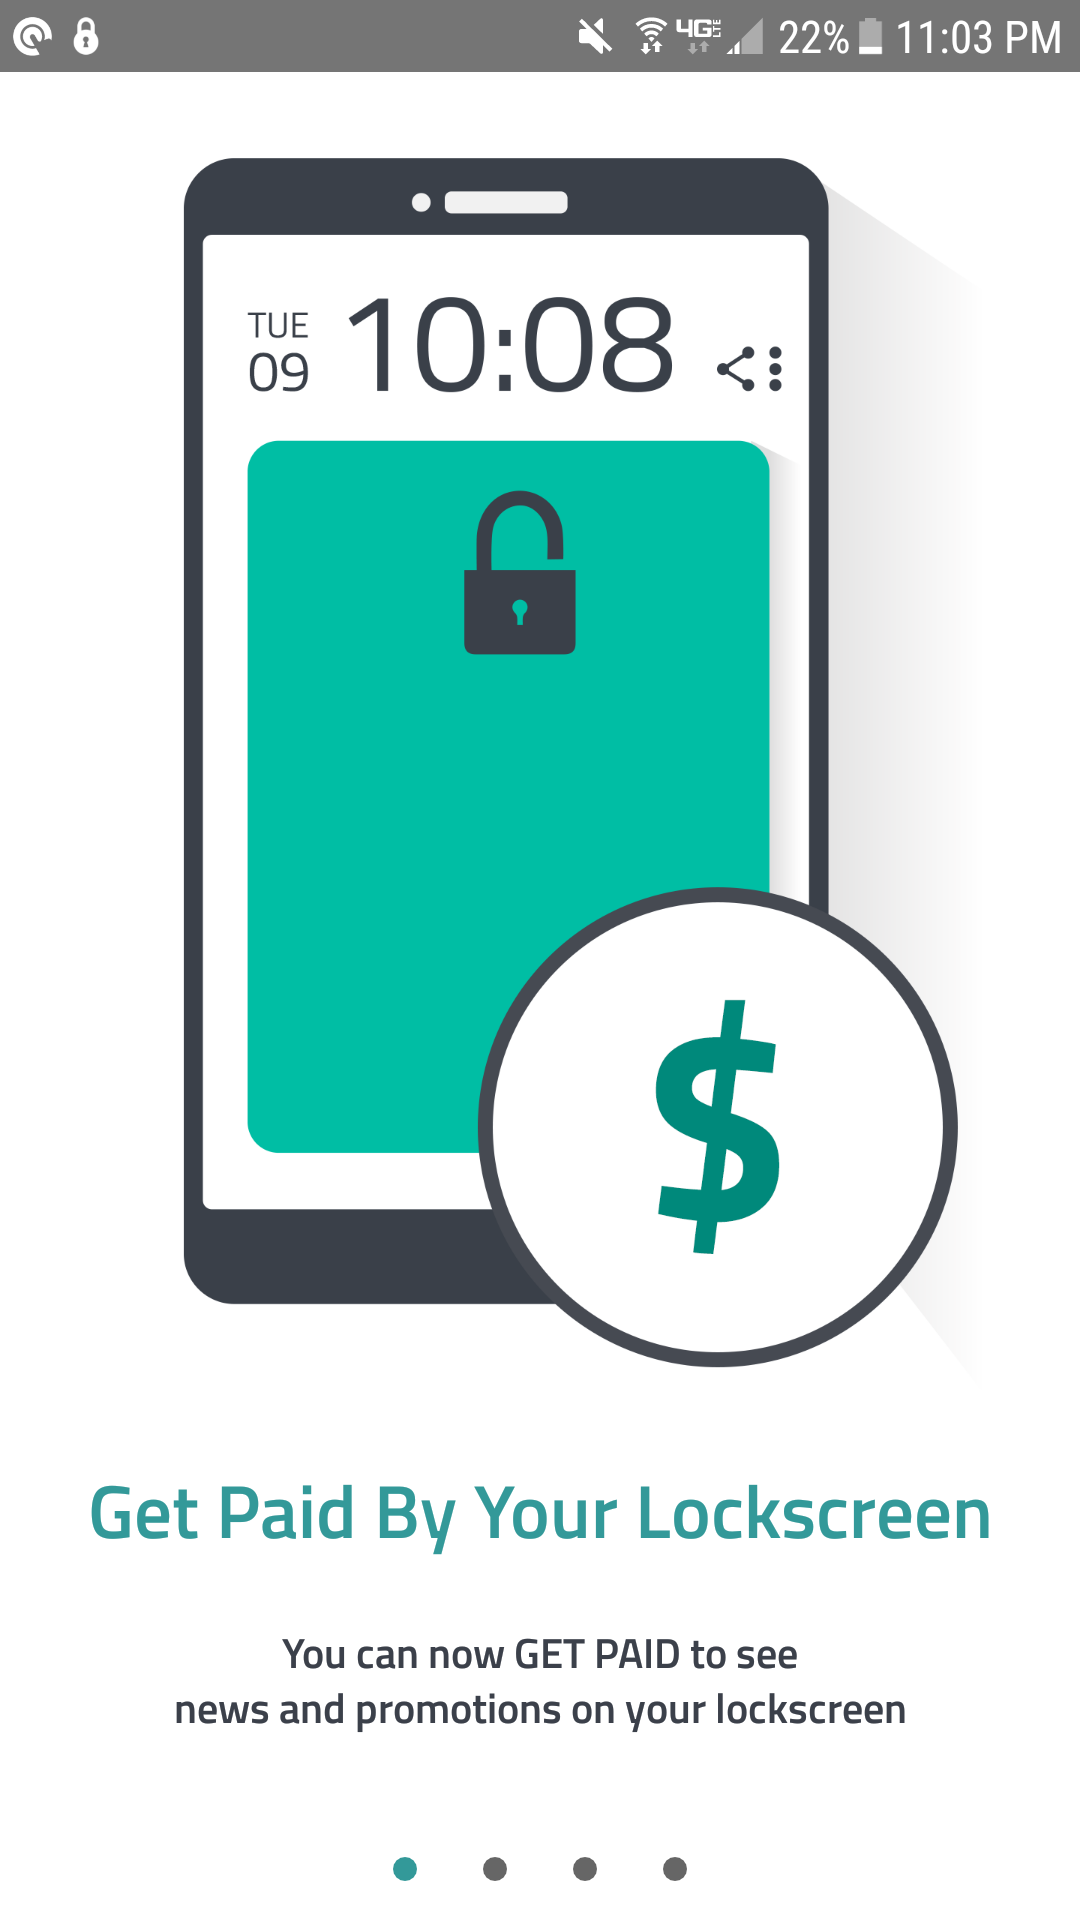 Slidejoy get paid by your lockscreen